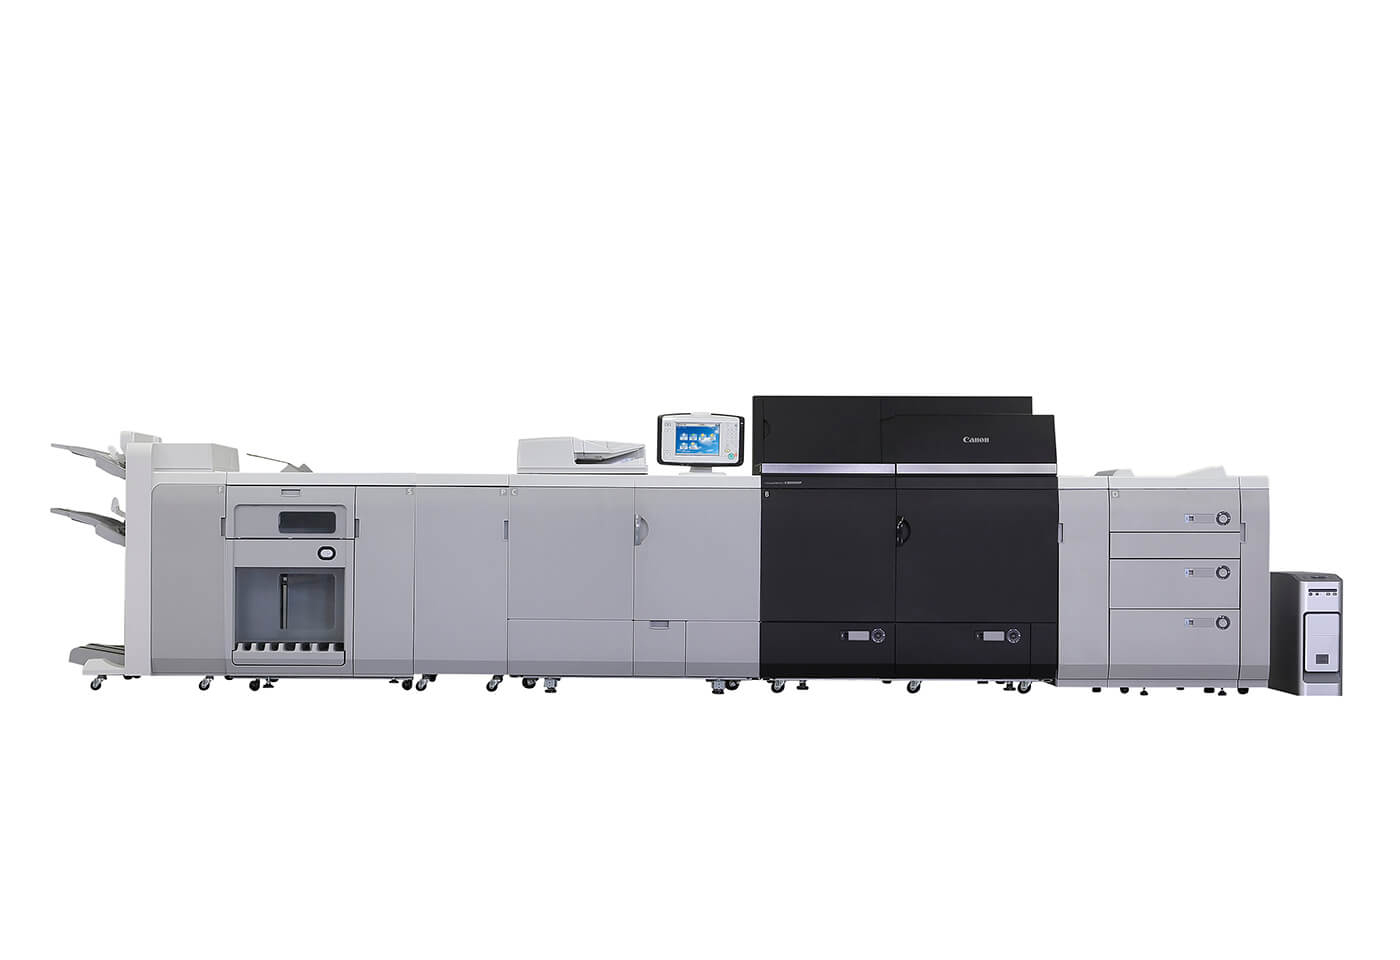 Canon imagePRESS C8000 front image